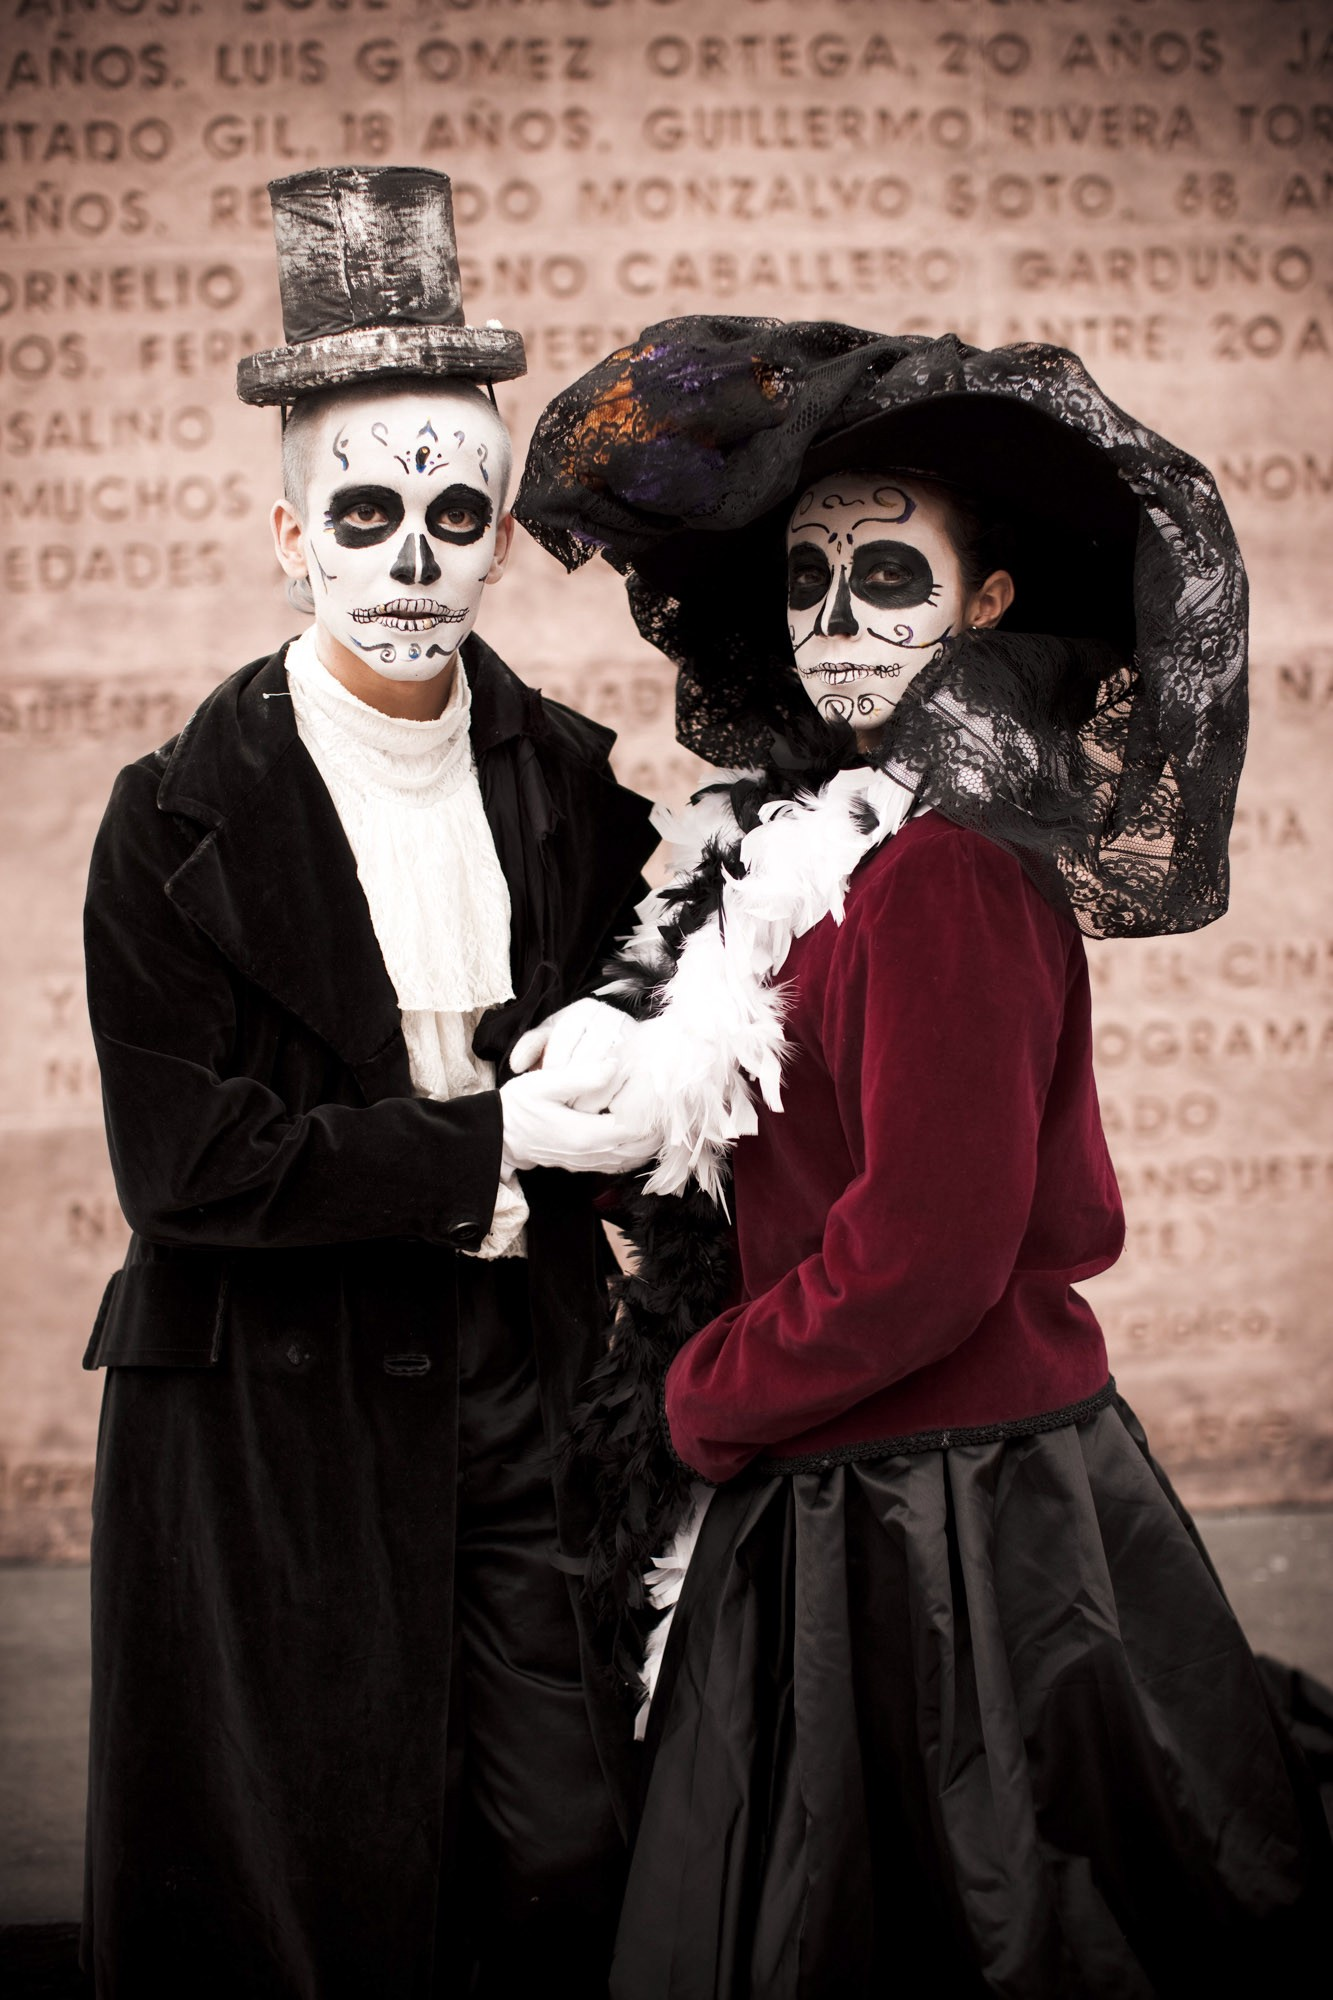 In the early twentieth century, Mexican cartoonist José Guadalupe Posada created a series of satiric zinc etchings depicting dandified calaveras (skeletons), including one wearing an extravagant bonnet. La Calavera Catrina and her consort are now an integral part of Day of the Dead festivities. ©James Fisher 2017 All Rights Reserved